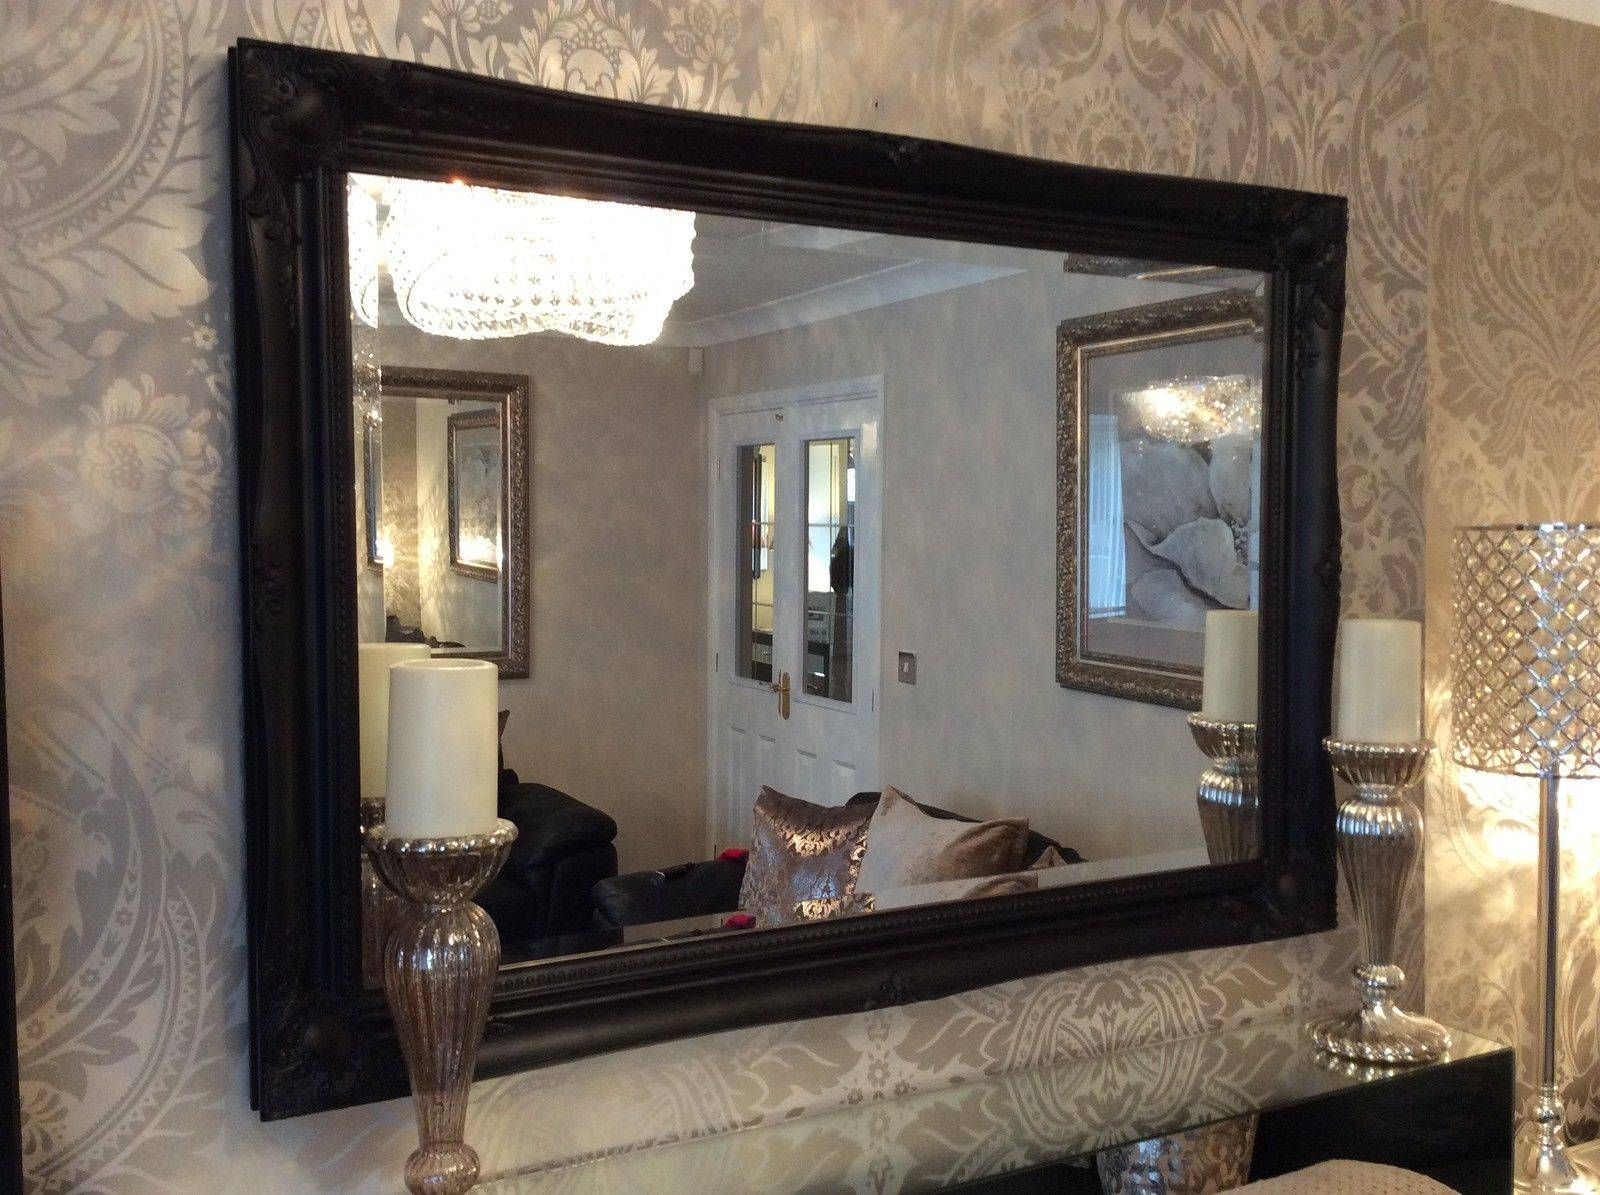 New Large Black Shabby Chic Bevelled Wall Mirror   36Inch X 26Inch Intended For Long Black Wall Mirrors (Photo 7 of 15)